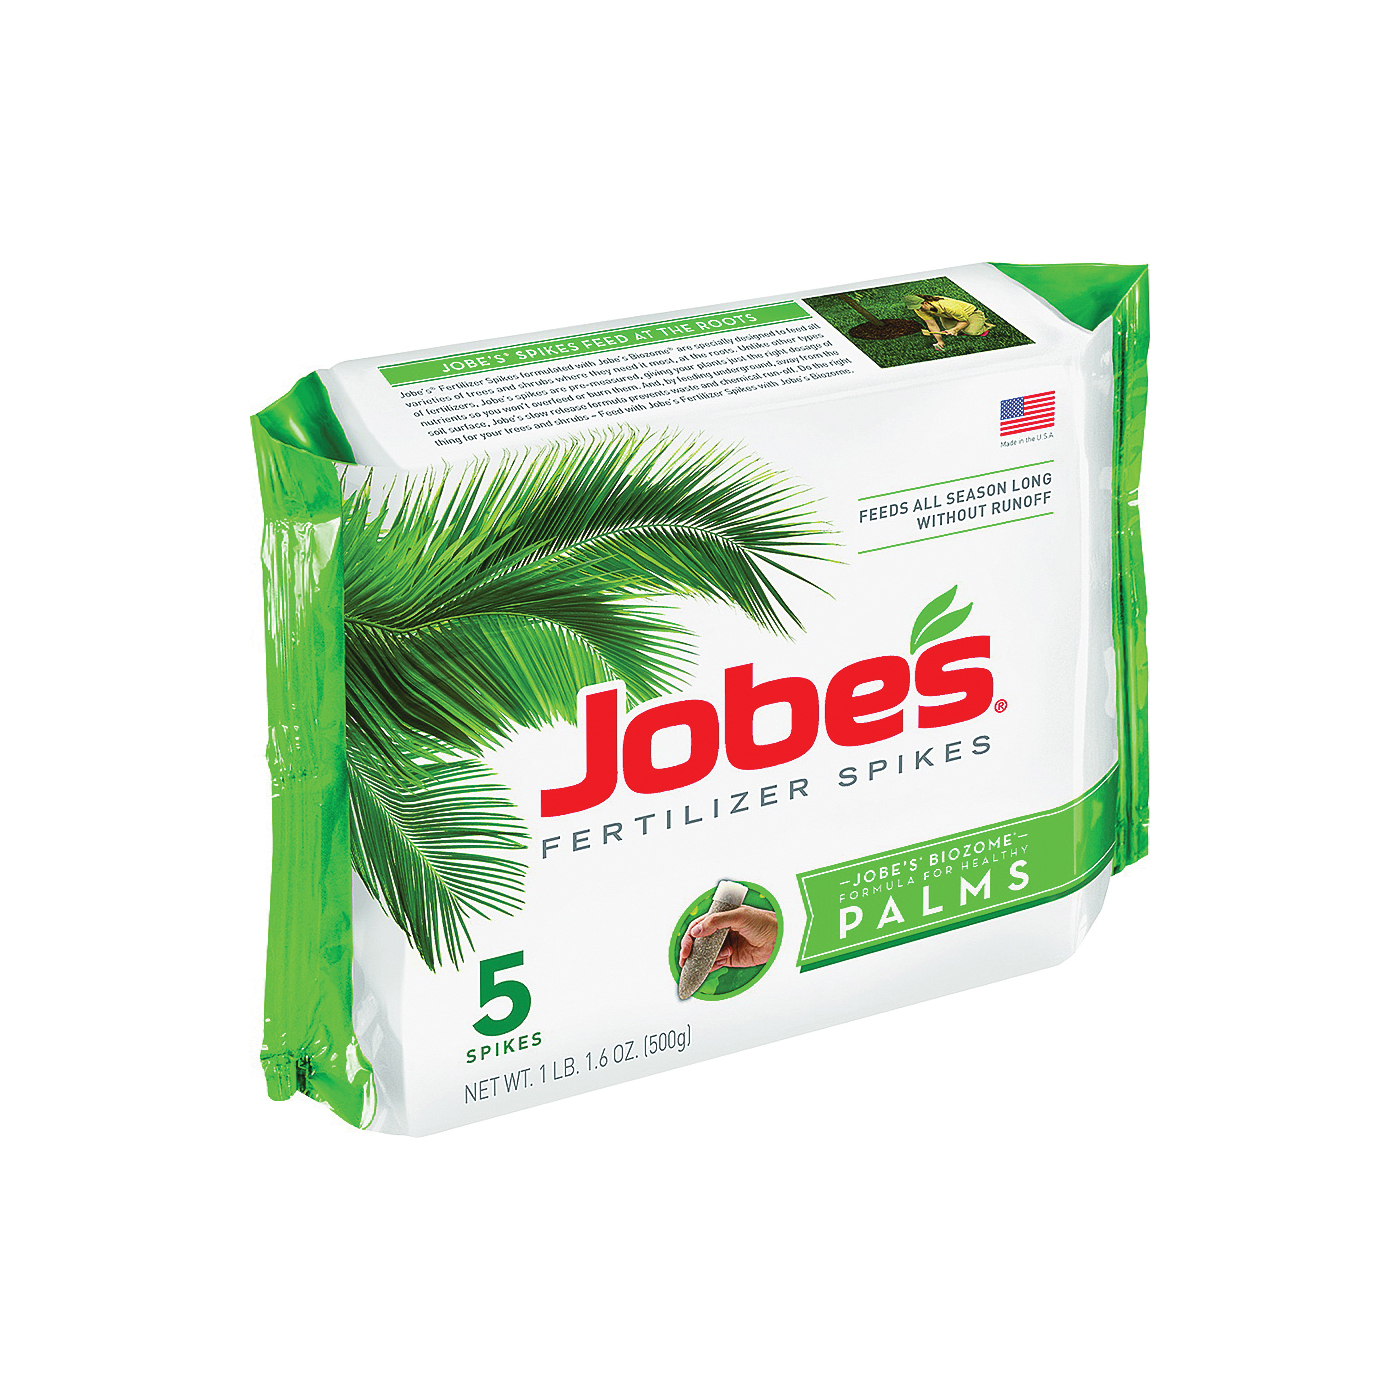 Picture of Jobes 01010 Fertilizer Spike Pack, Spike, Gray/Light Brown, Odorless, Pack